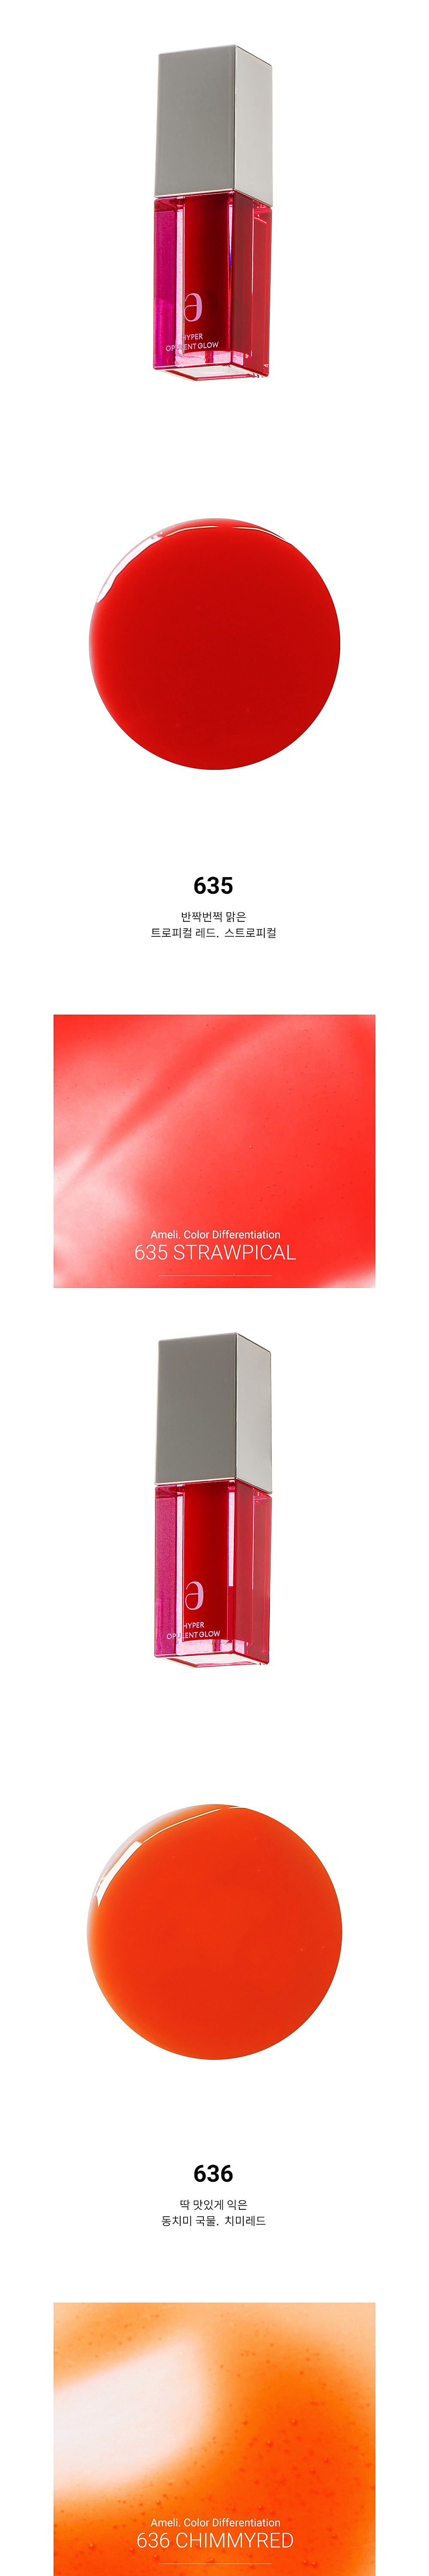 cosmetics red color image-S1L2